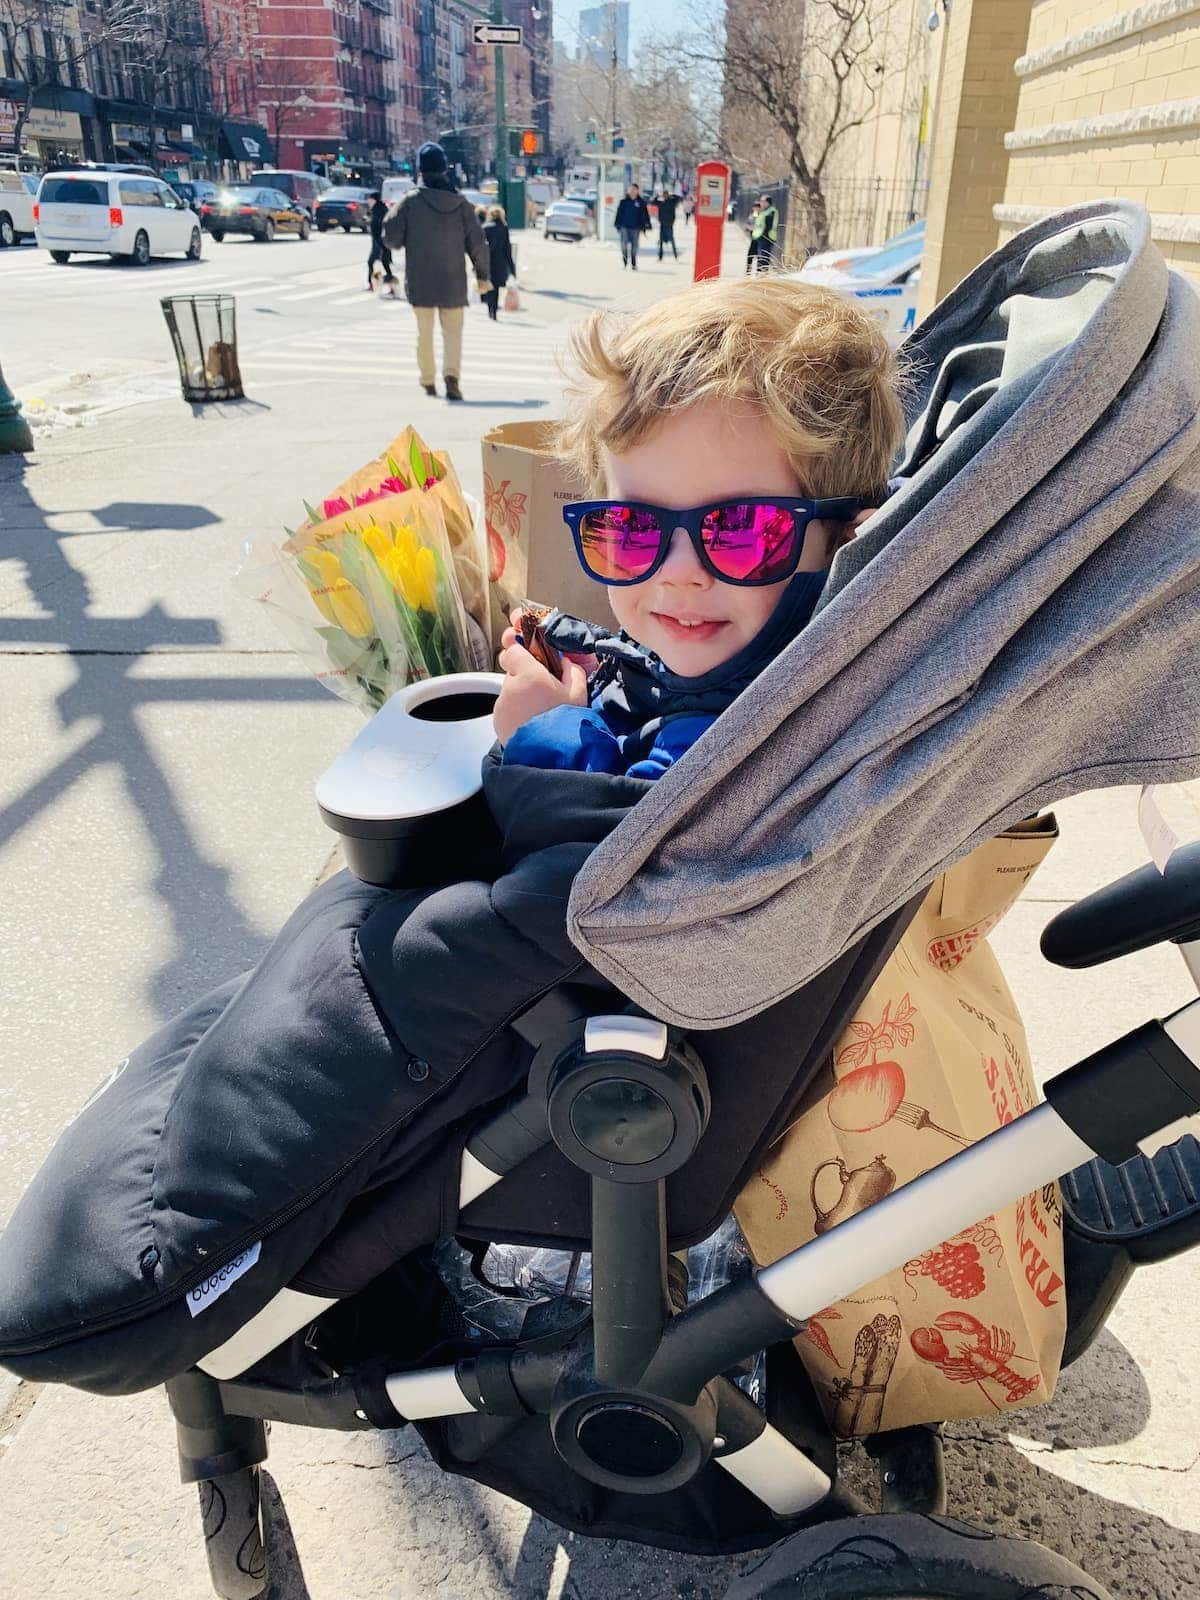 Eddie in the stroller With sunglasses on